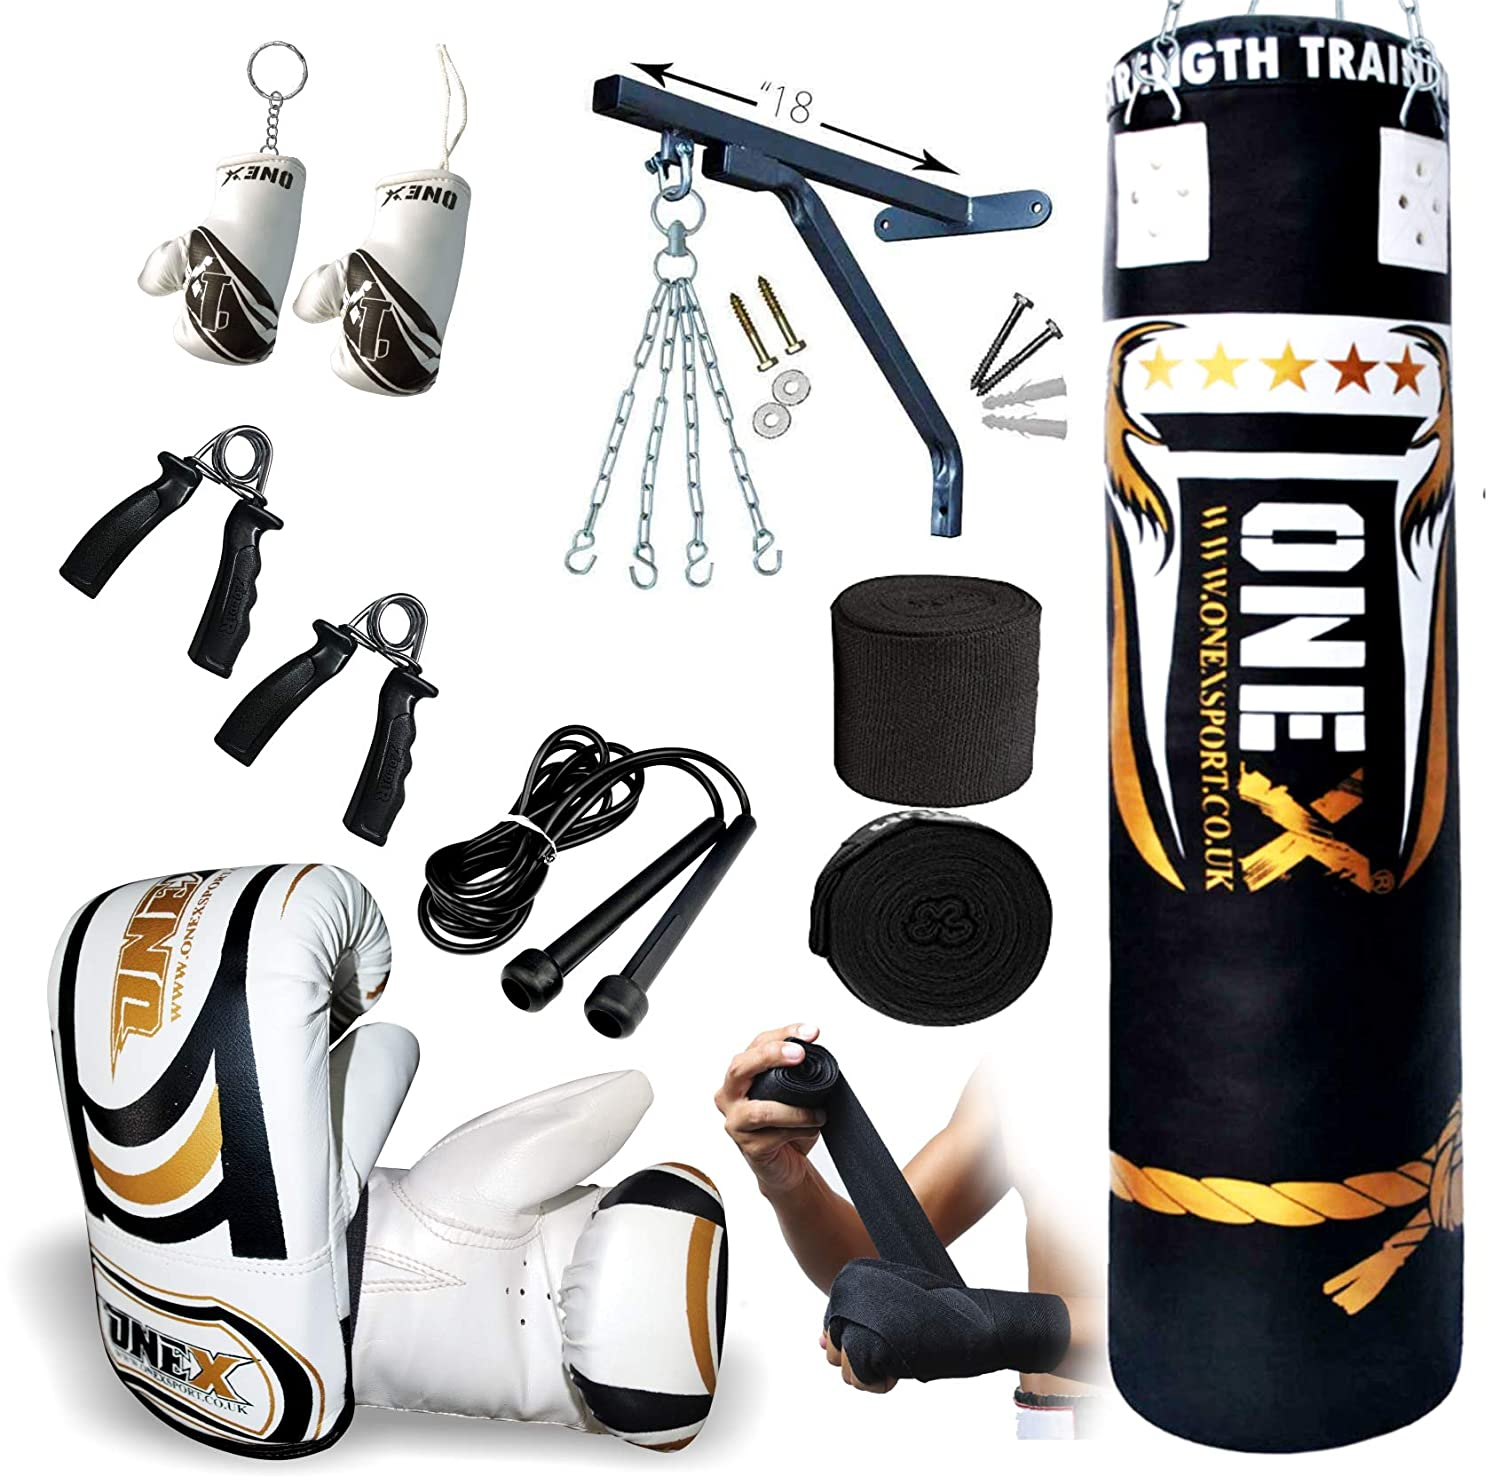 14-Piece Boxing Set 5ft Filled Heavy Punch Bag Gloves,Chains,Bracket,Kick